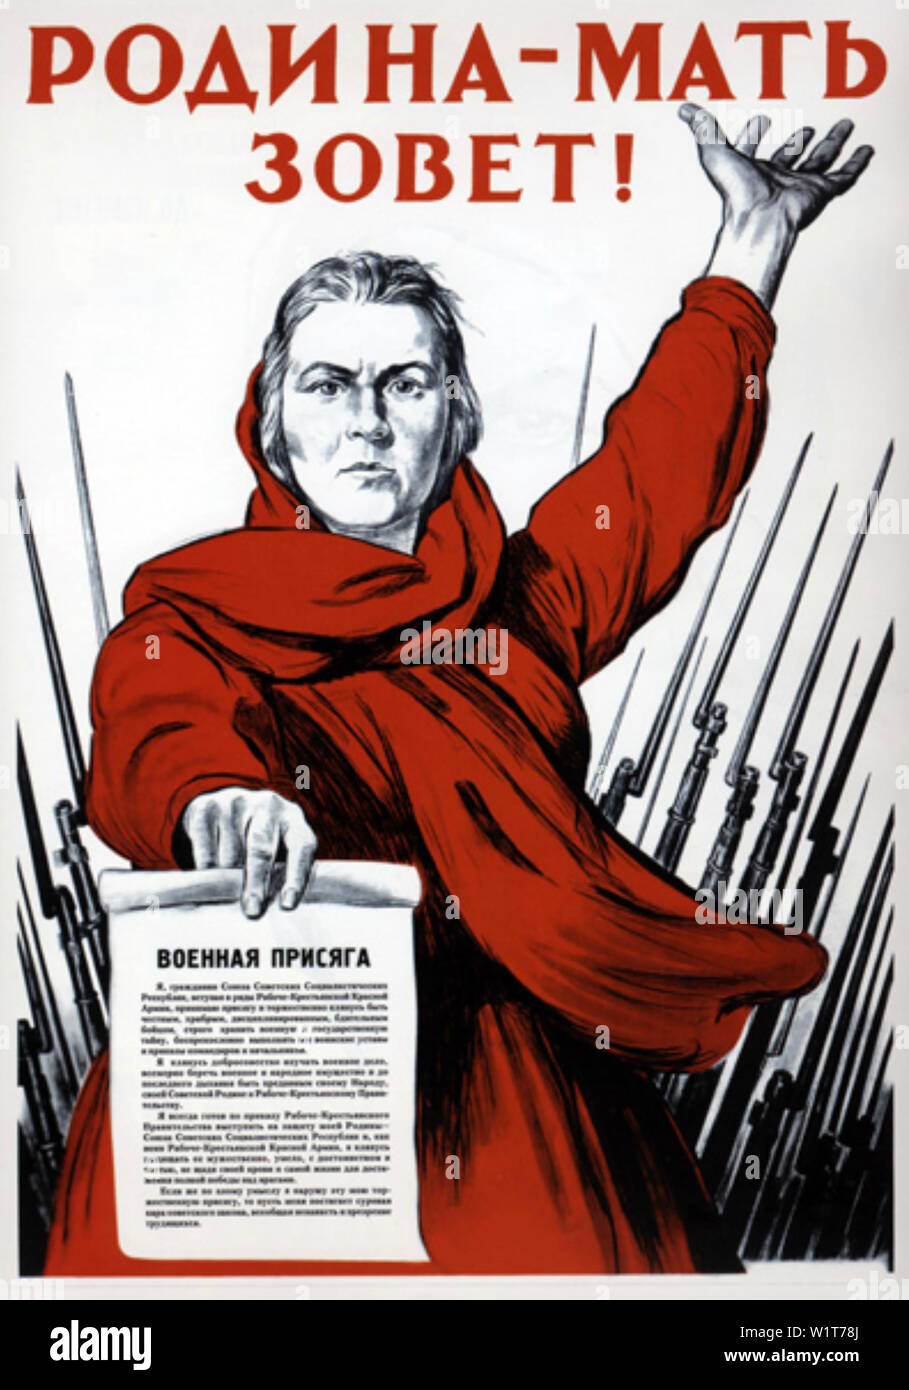 THE MOTHERLAND CALLS !  1941 Soviet poster after the German invasion - Stock Image